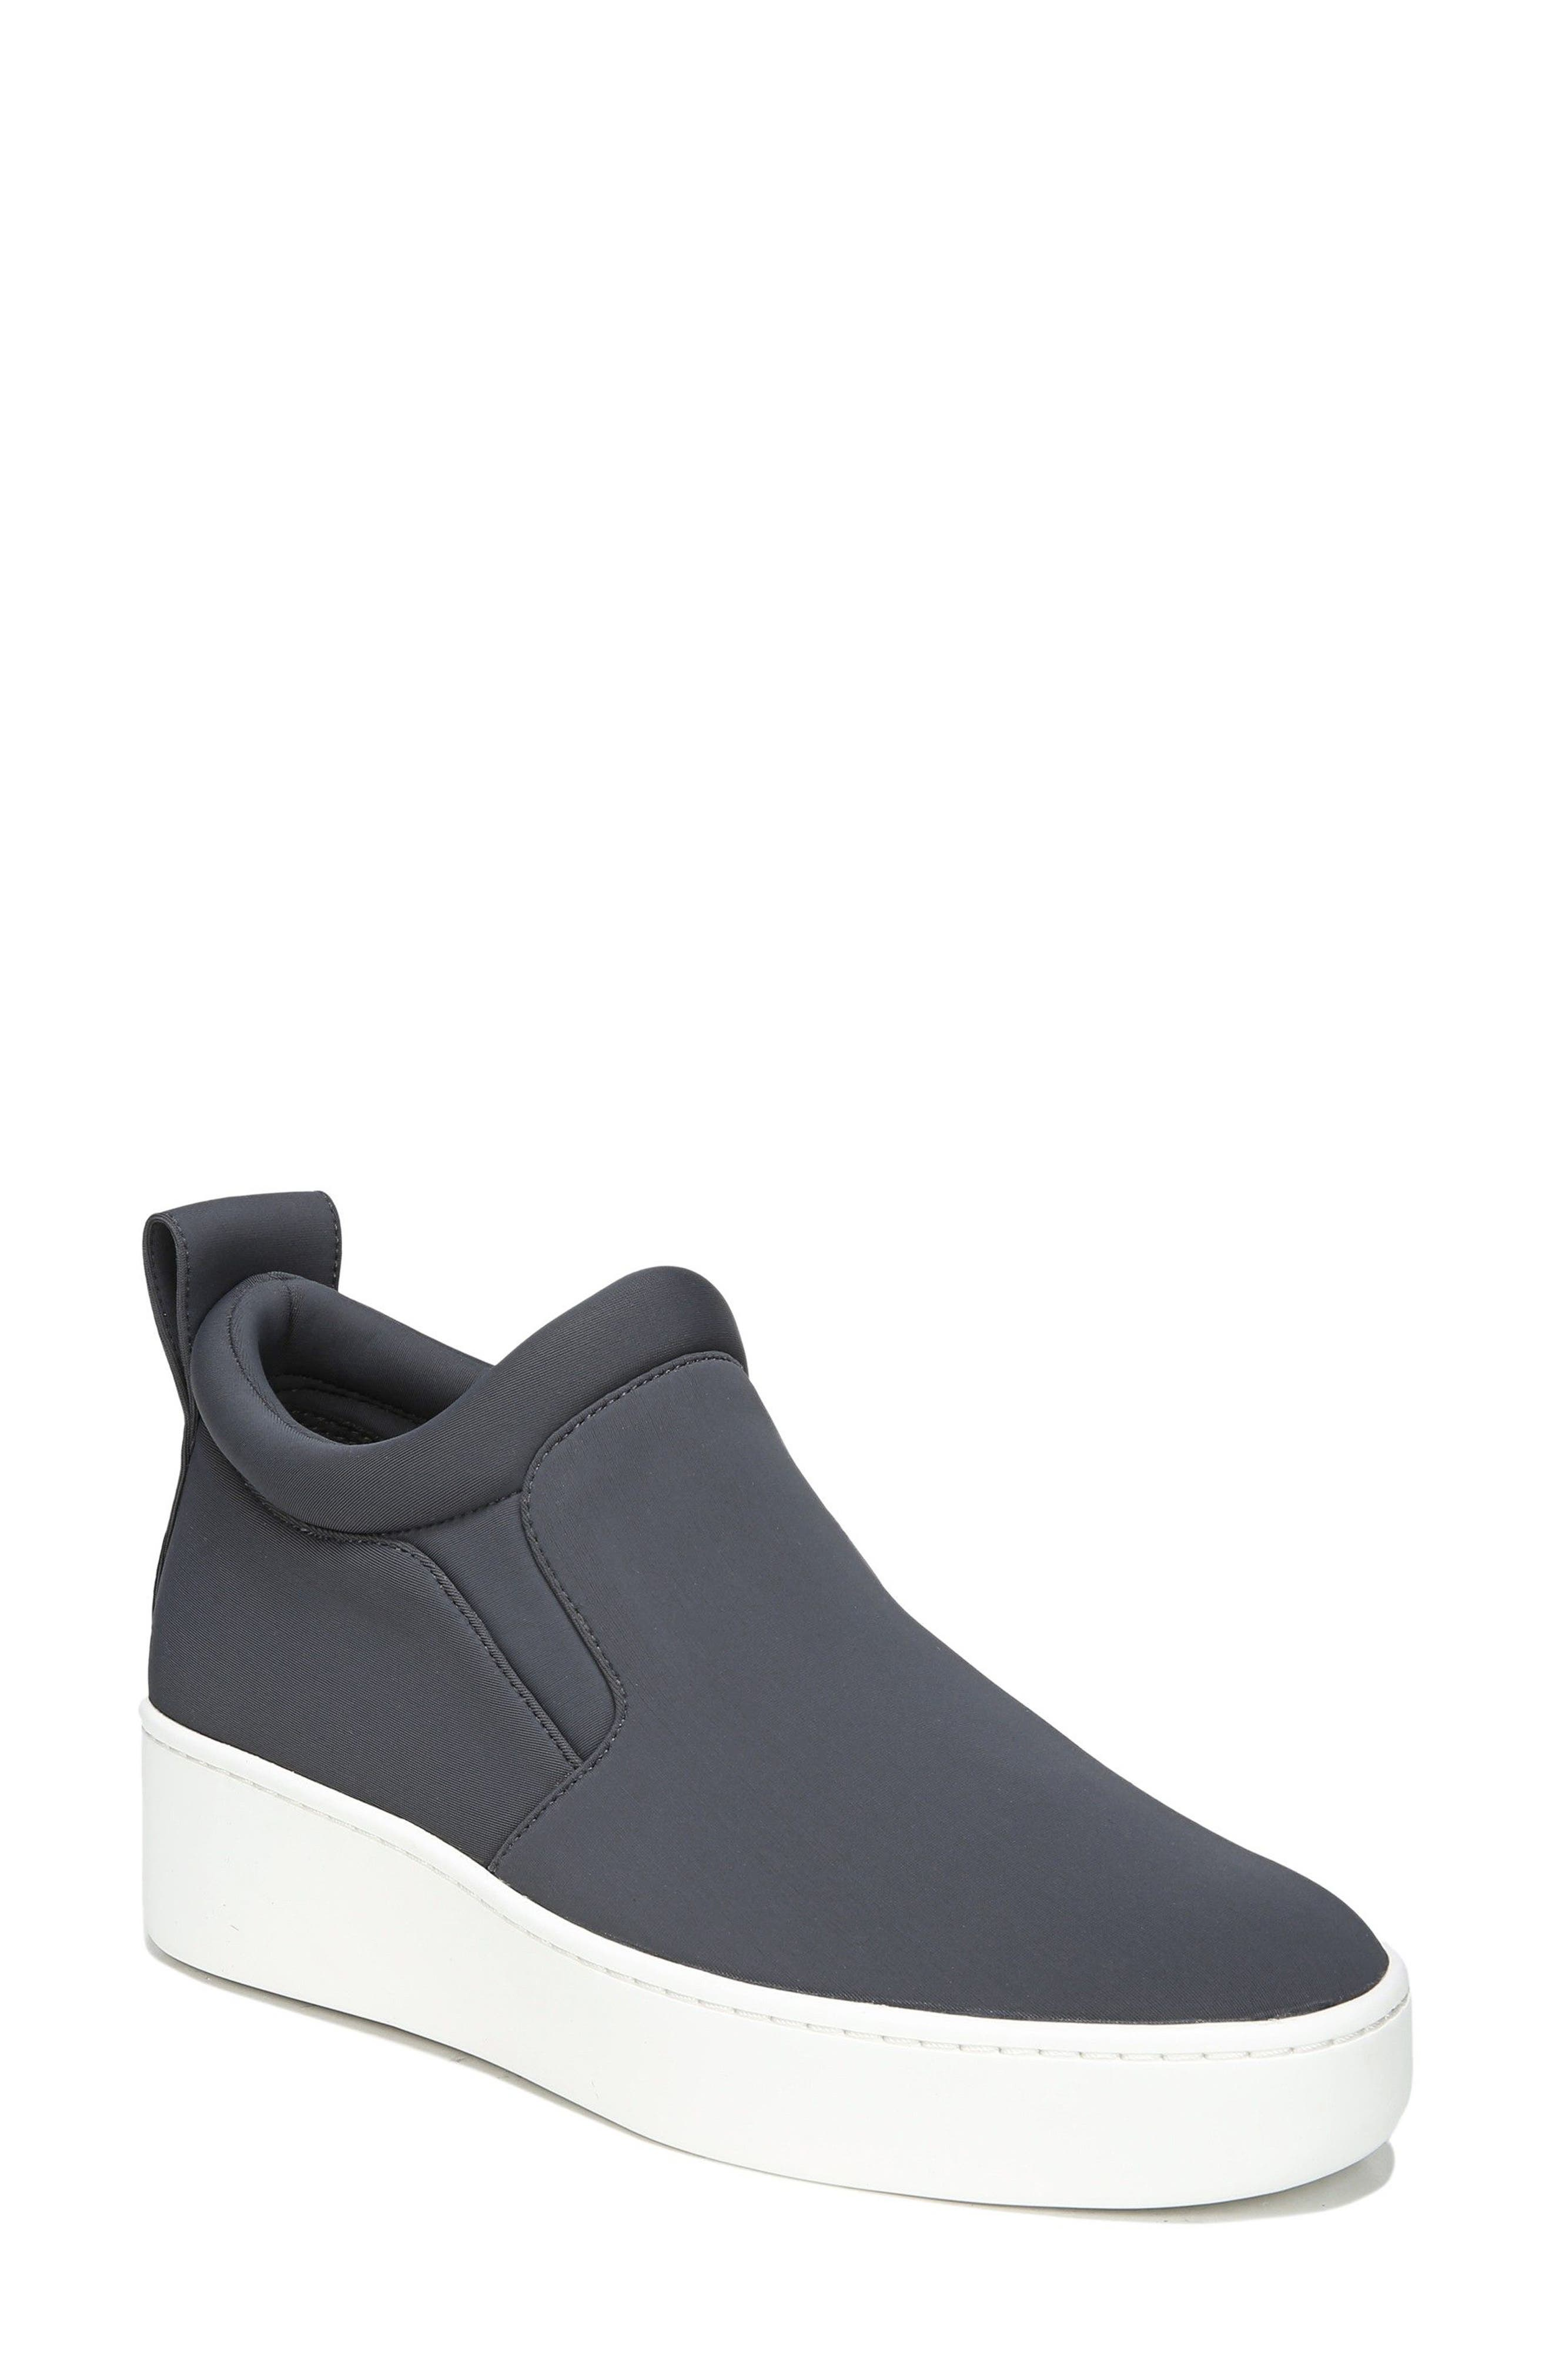 Via Spiga Ellis Platform Slip-On (Women)